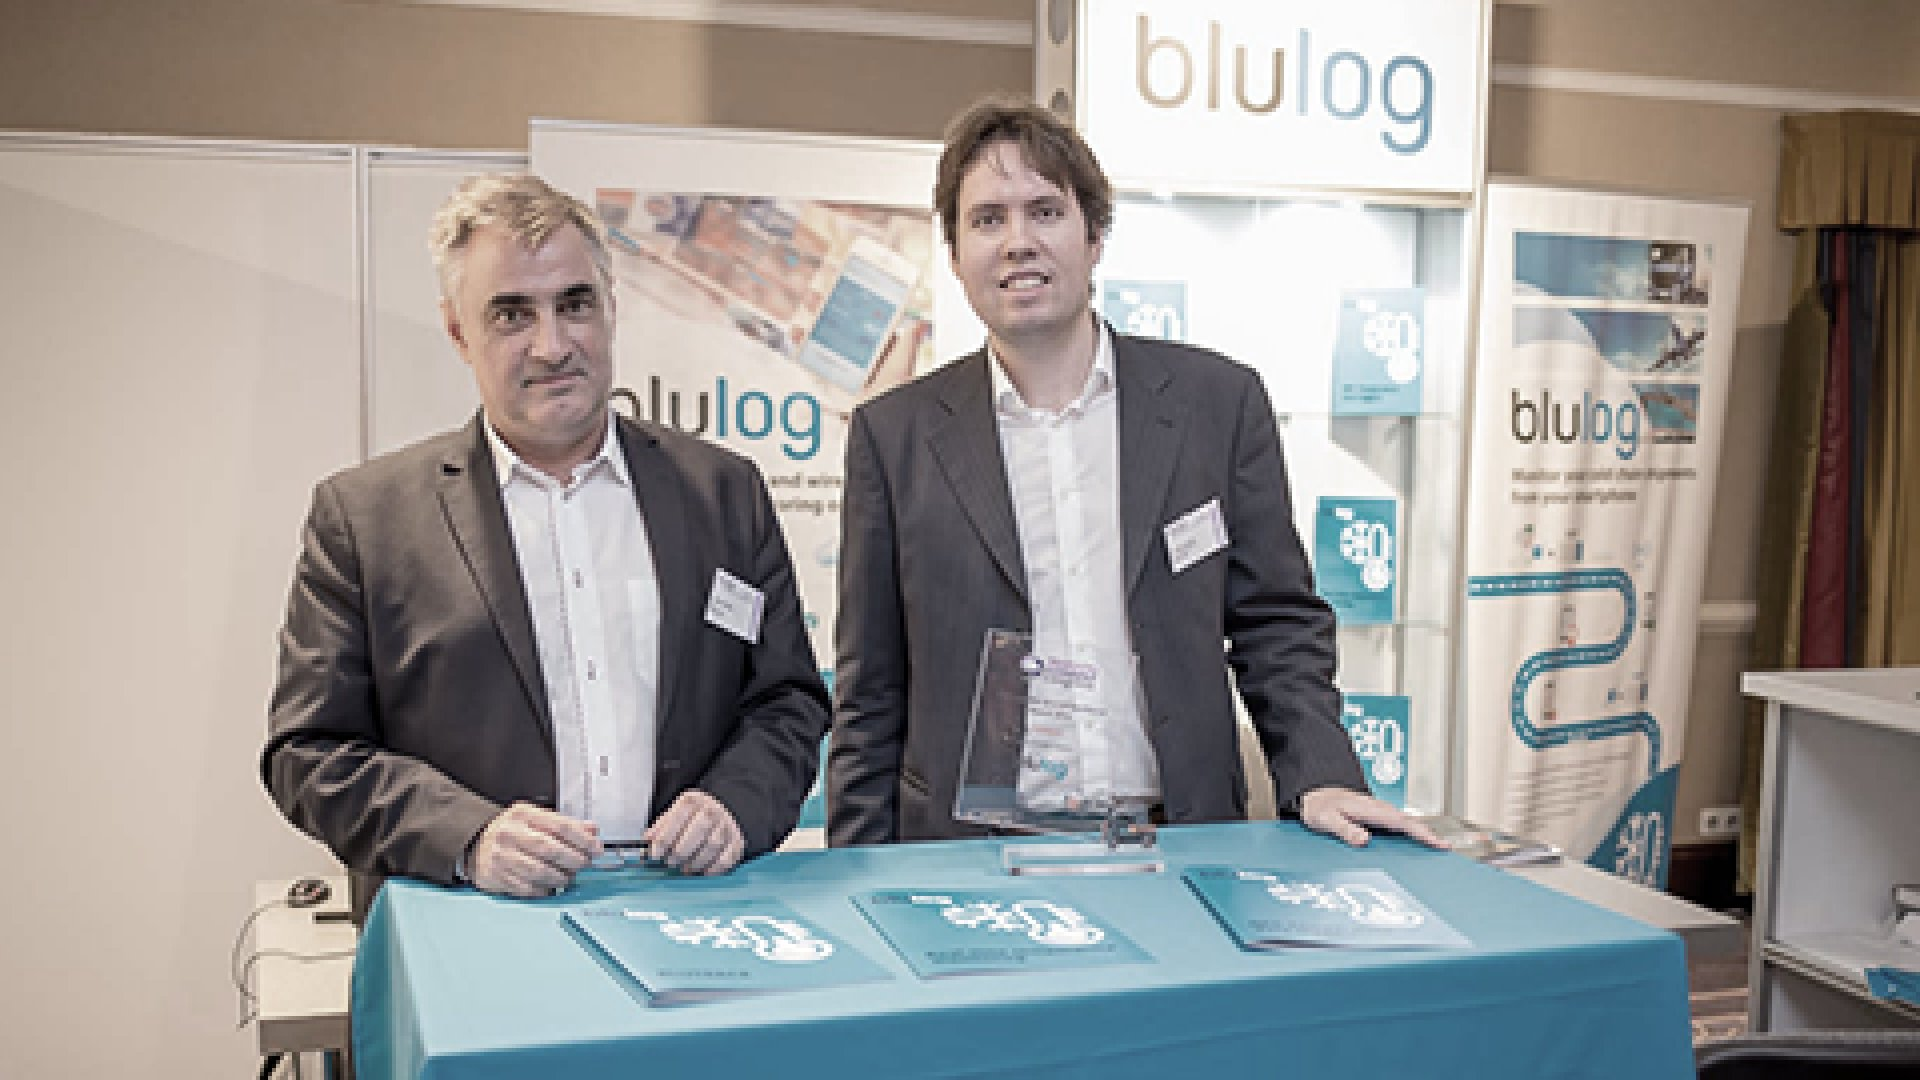 INTERVIEW WITH BLULOG